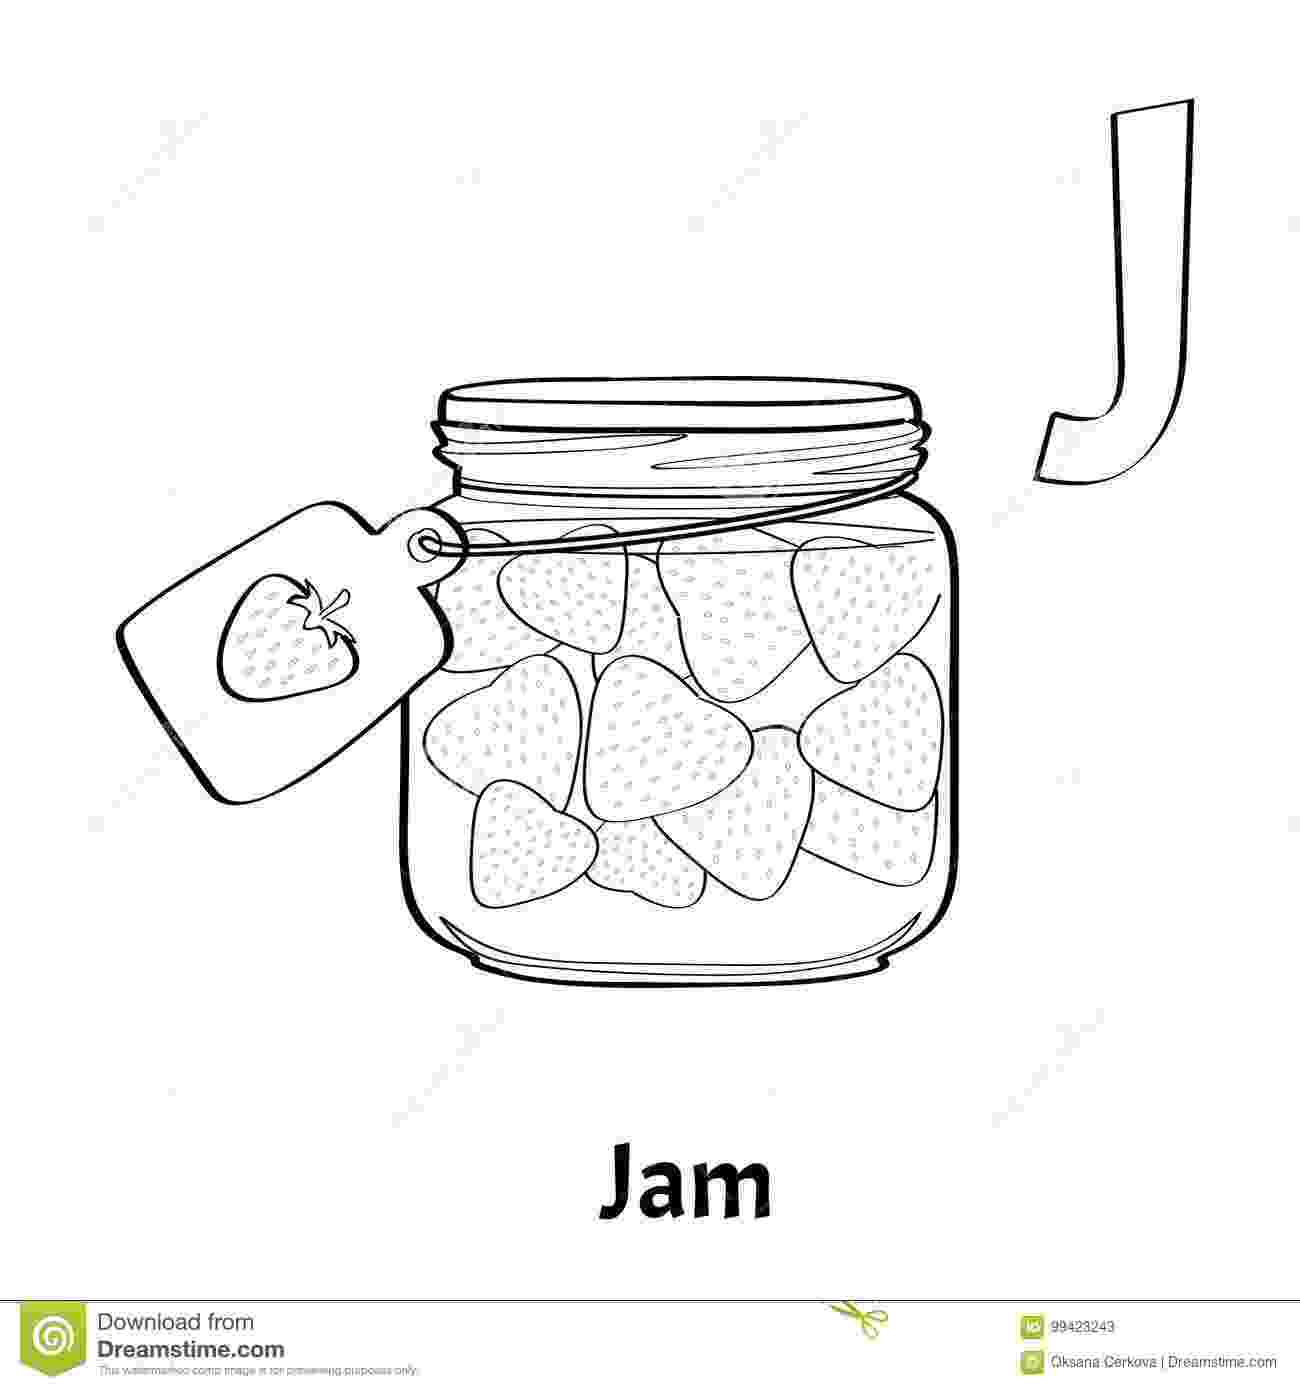 jam coloring pages image result for animal jam coloring pages giraffe coloring jam pages